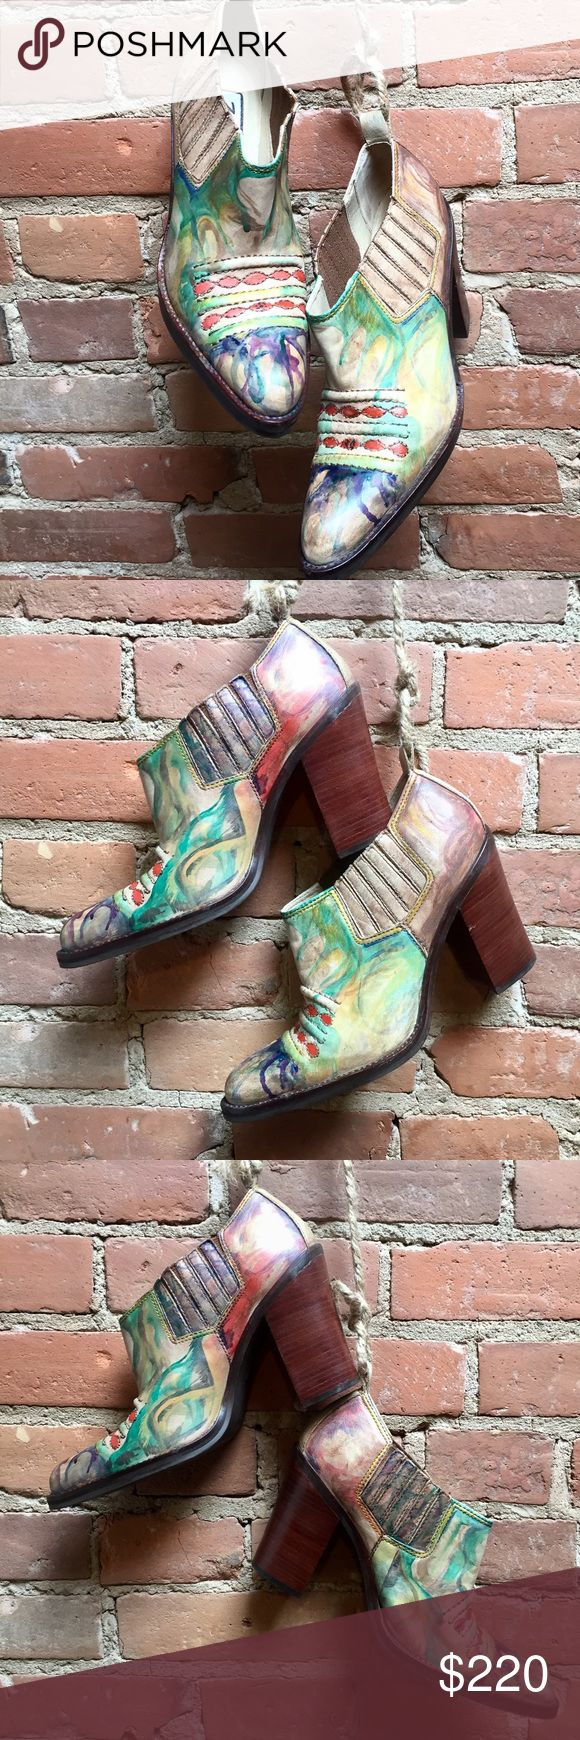 Hand Painted Reworked Vintage Boho Cowboy Boots These rad cowboy boots were lovingly hand painted with paints specific to leather. The turquoises, greens, blues and purples that I used interact and intertwine with each other, creating organic shapes. The shoes are one of a kind and differ slightly from each other, which to me adds a special touch. I left some of the boot it's natural tan, so that the raw beauty of the leather could show through as well!  These shoes are really an abstract…